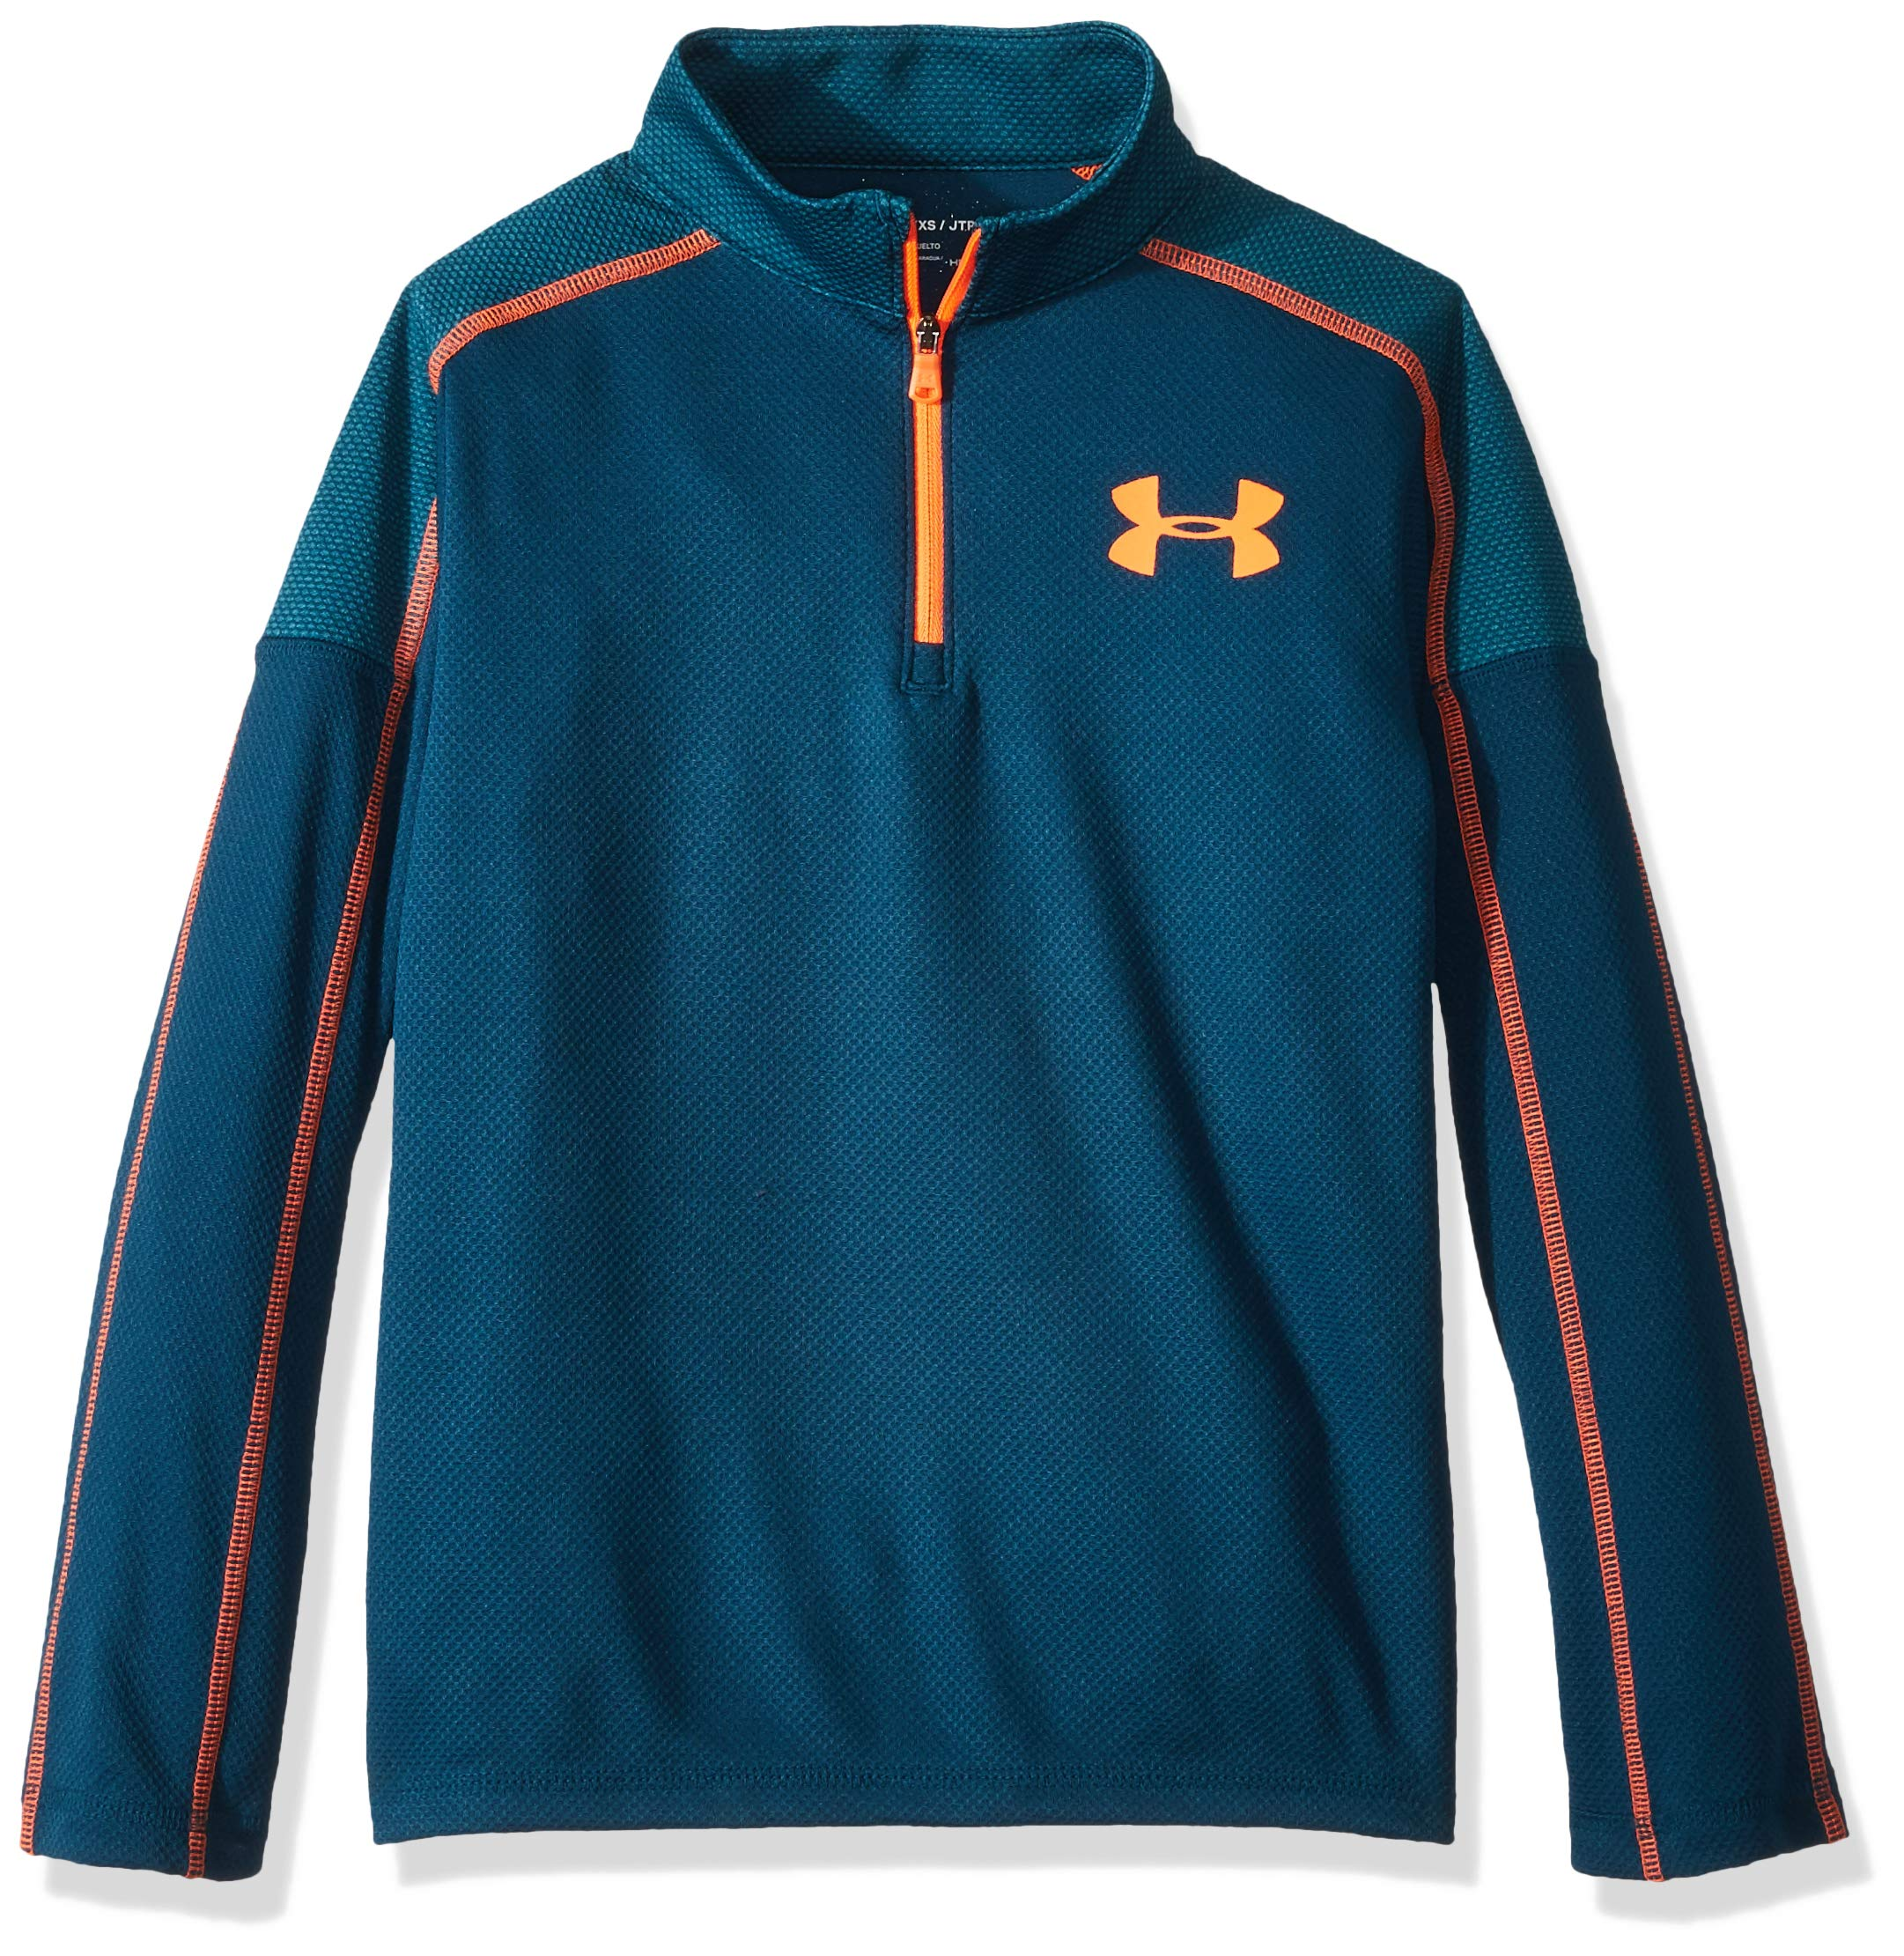 Under Armour Boys Tech 1/2 Zip, Techno Teal (489)/Magma Orange, Youth X-Small by Under Armour